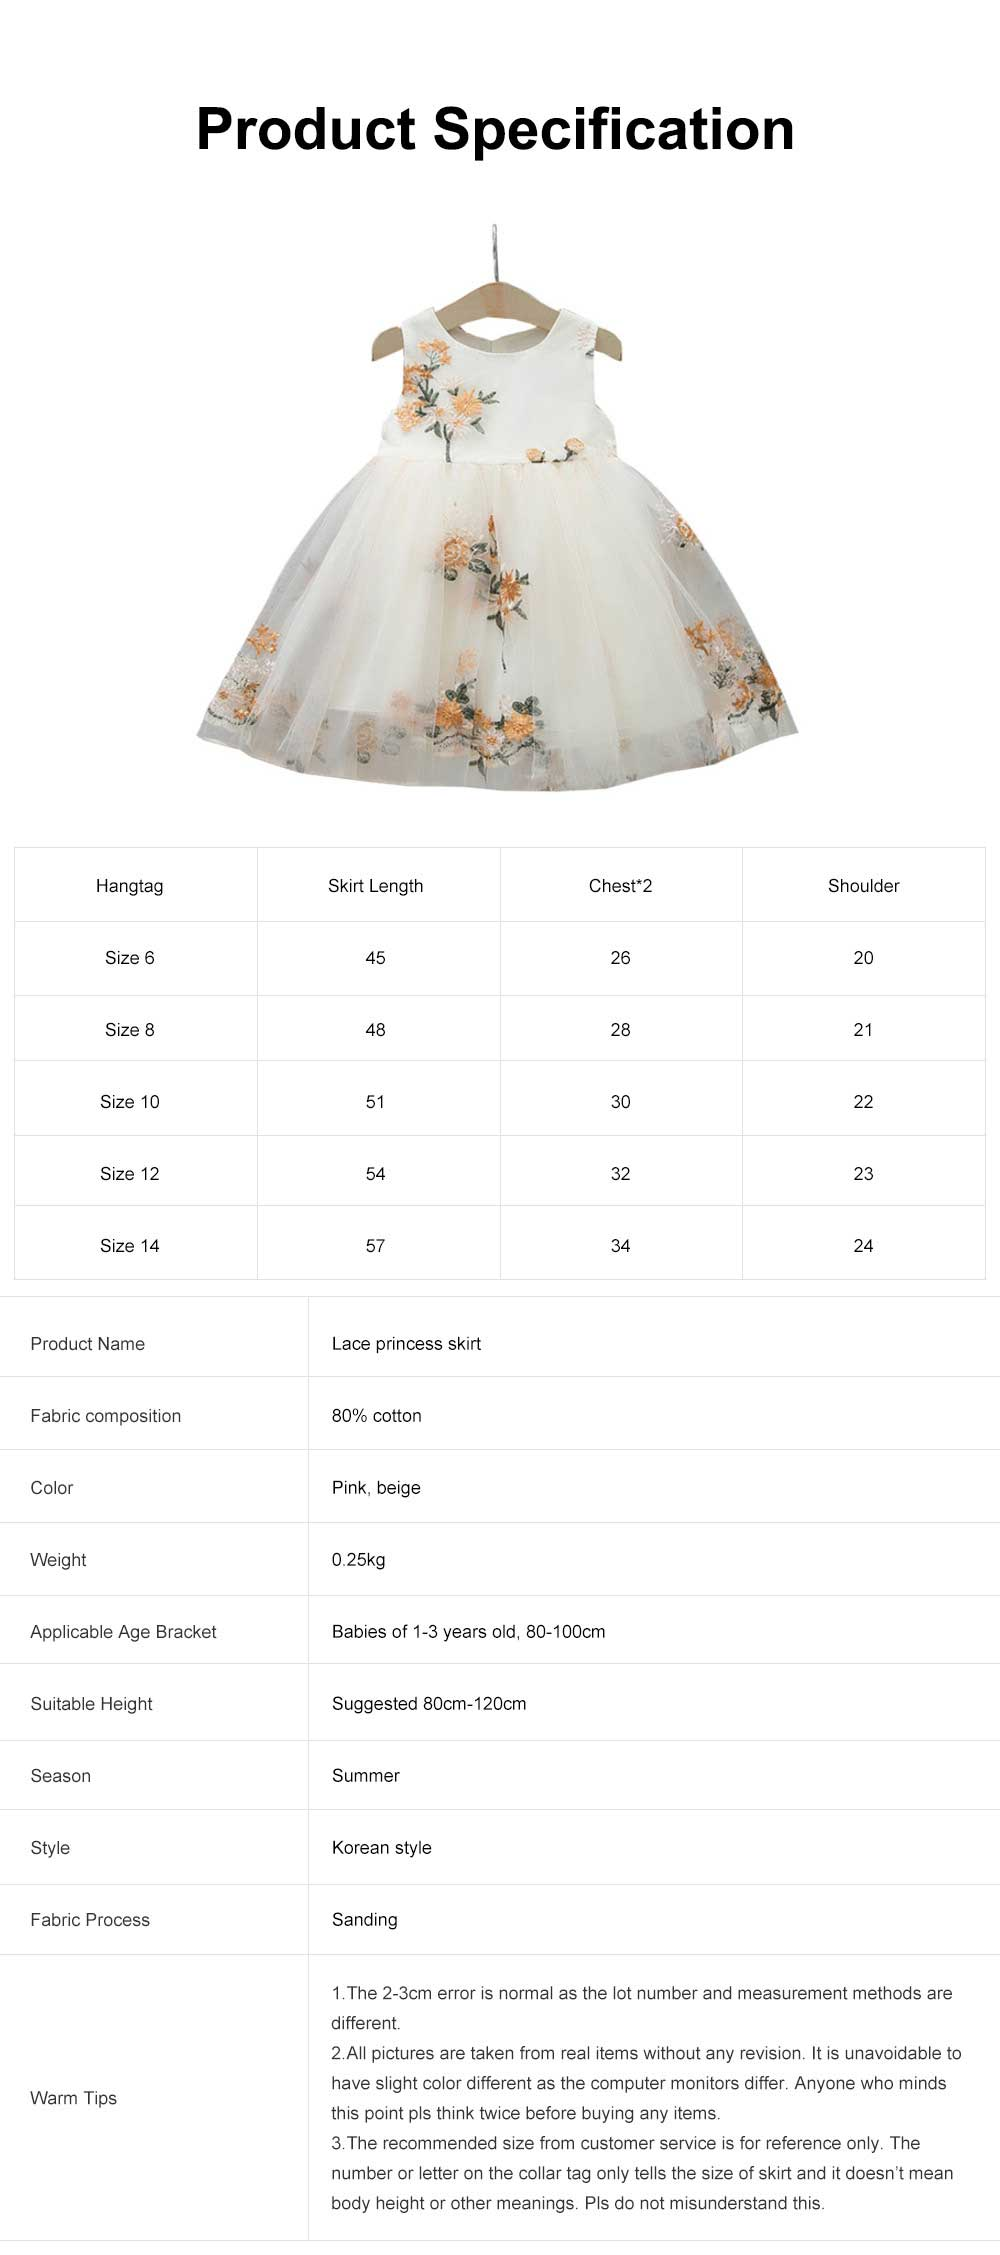 Pure Color Lace Princess Skirt with Embroidered Flower Pattern for Girl Kids Wear in Summer 